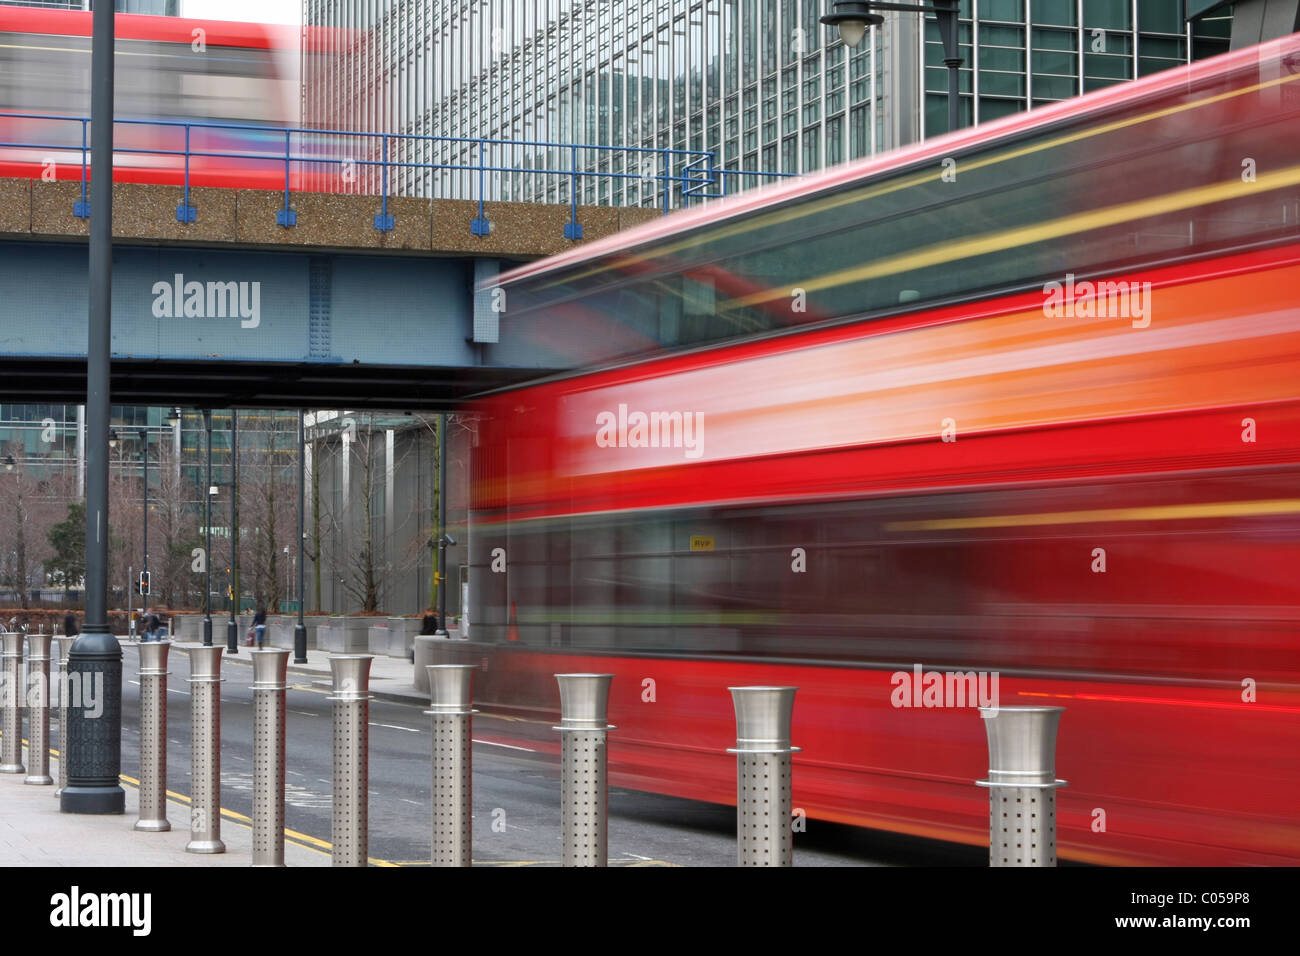 A blurred bus going under a bridge and a blurred DLR train going over the bridge in London's Canary Wharf Stock Photo